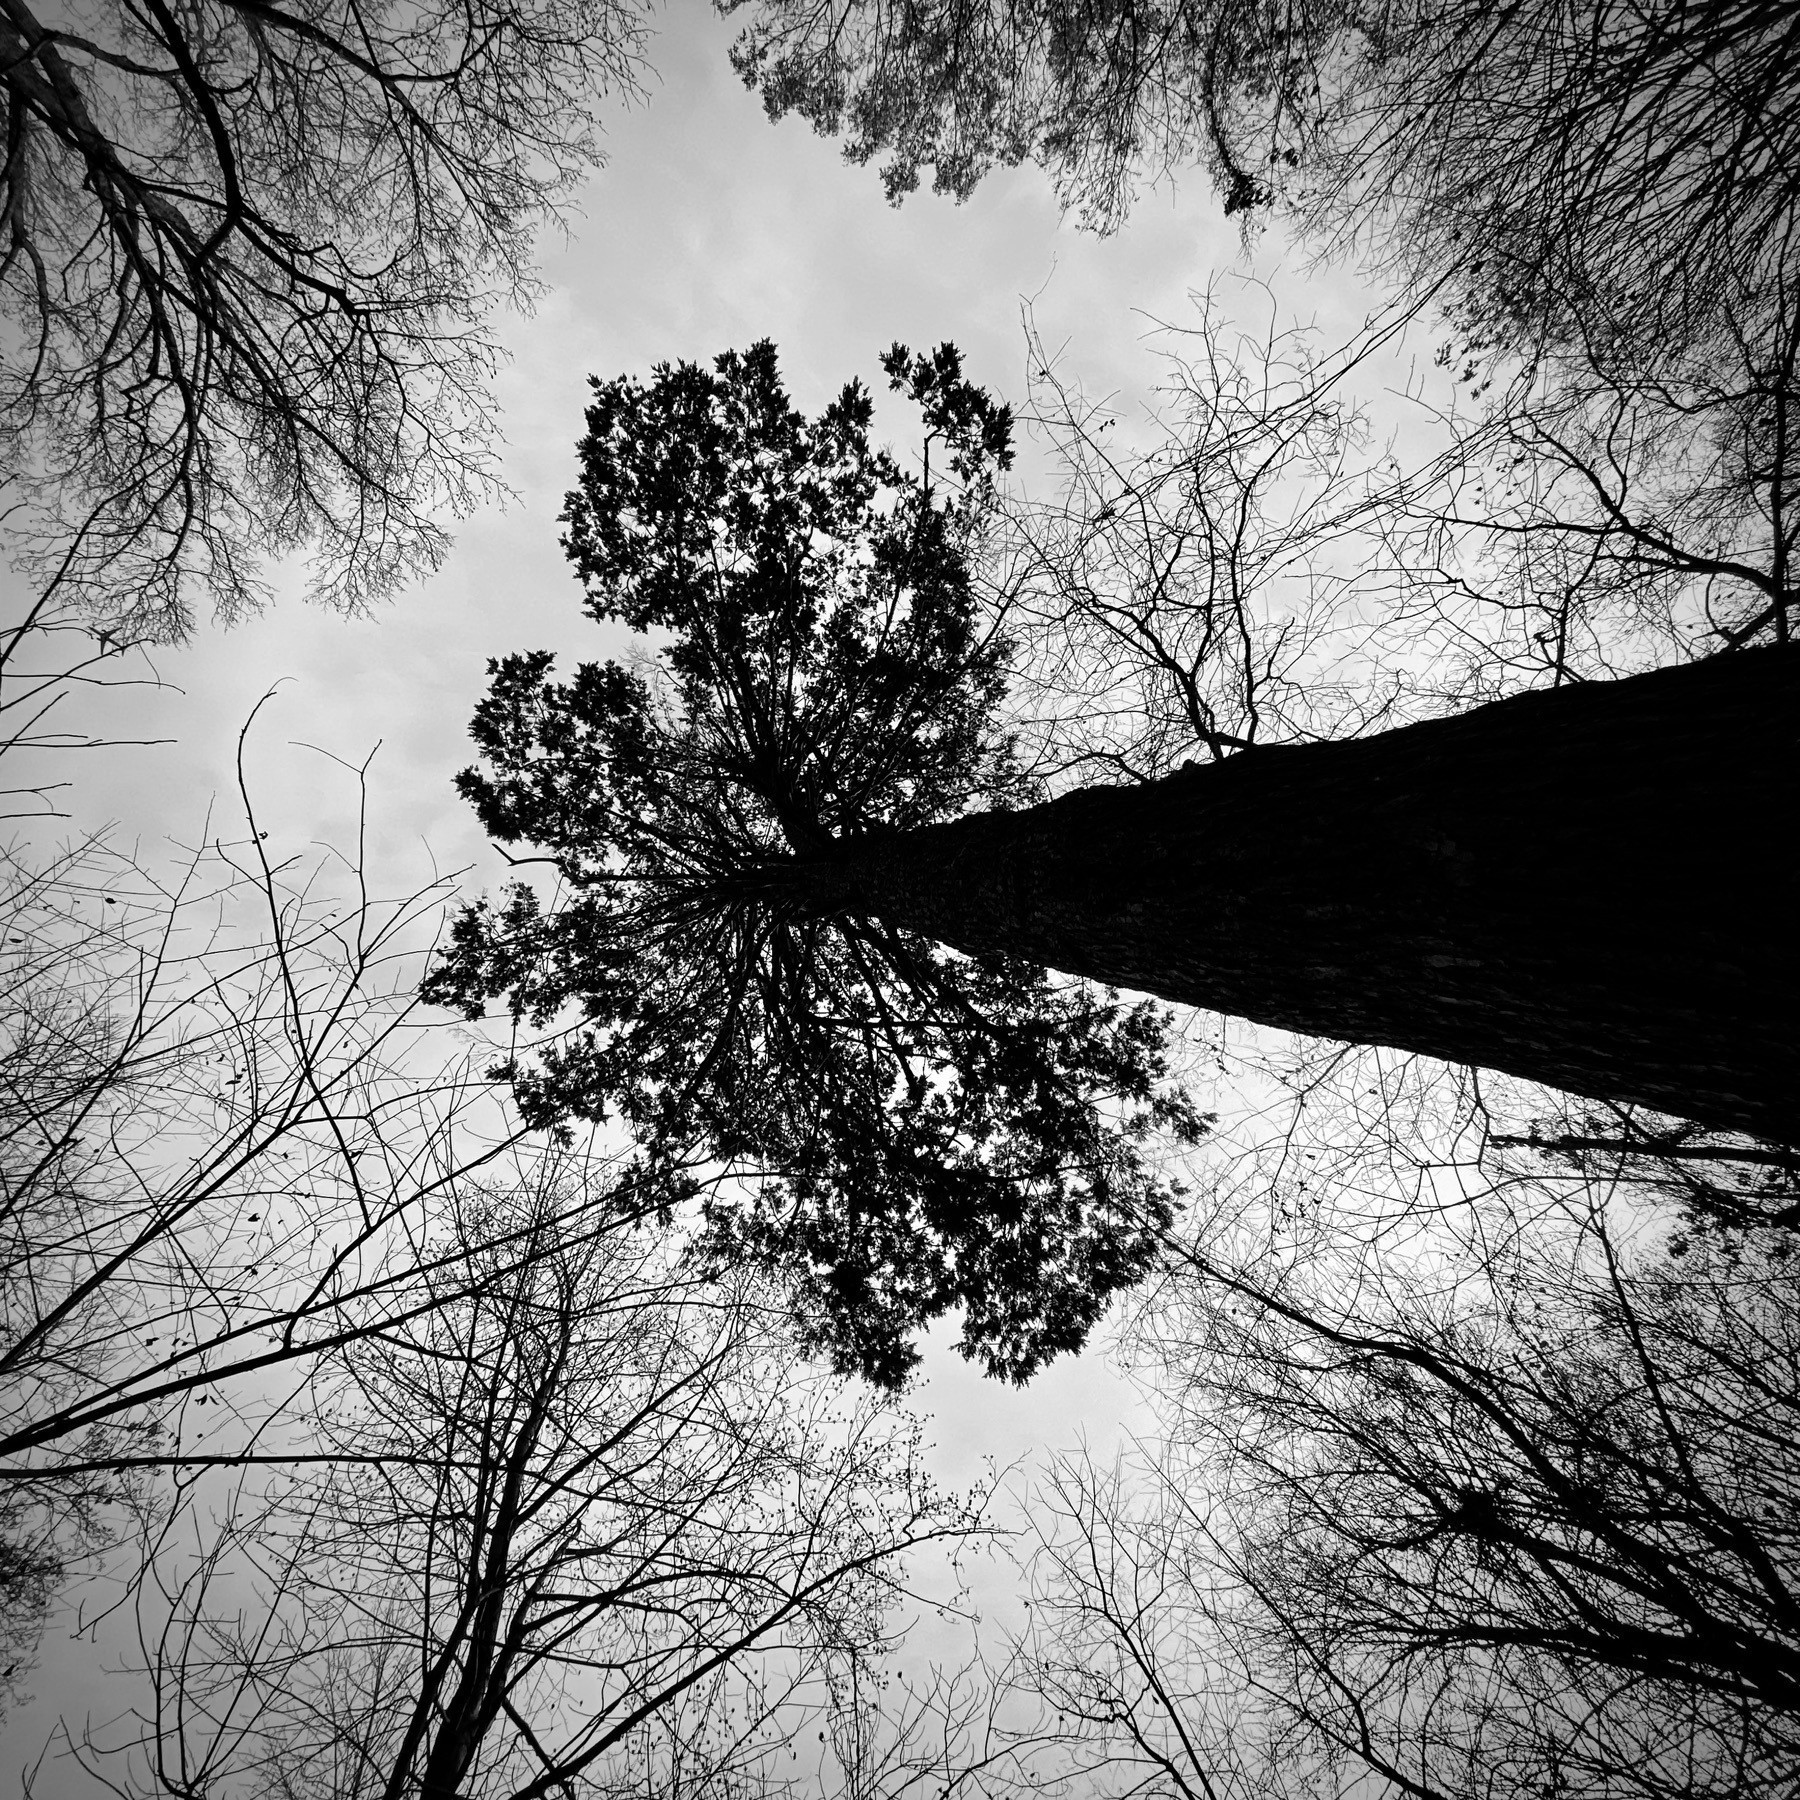 Looking straight up at a Hemlock tree, with grey skies.